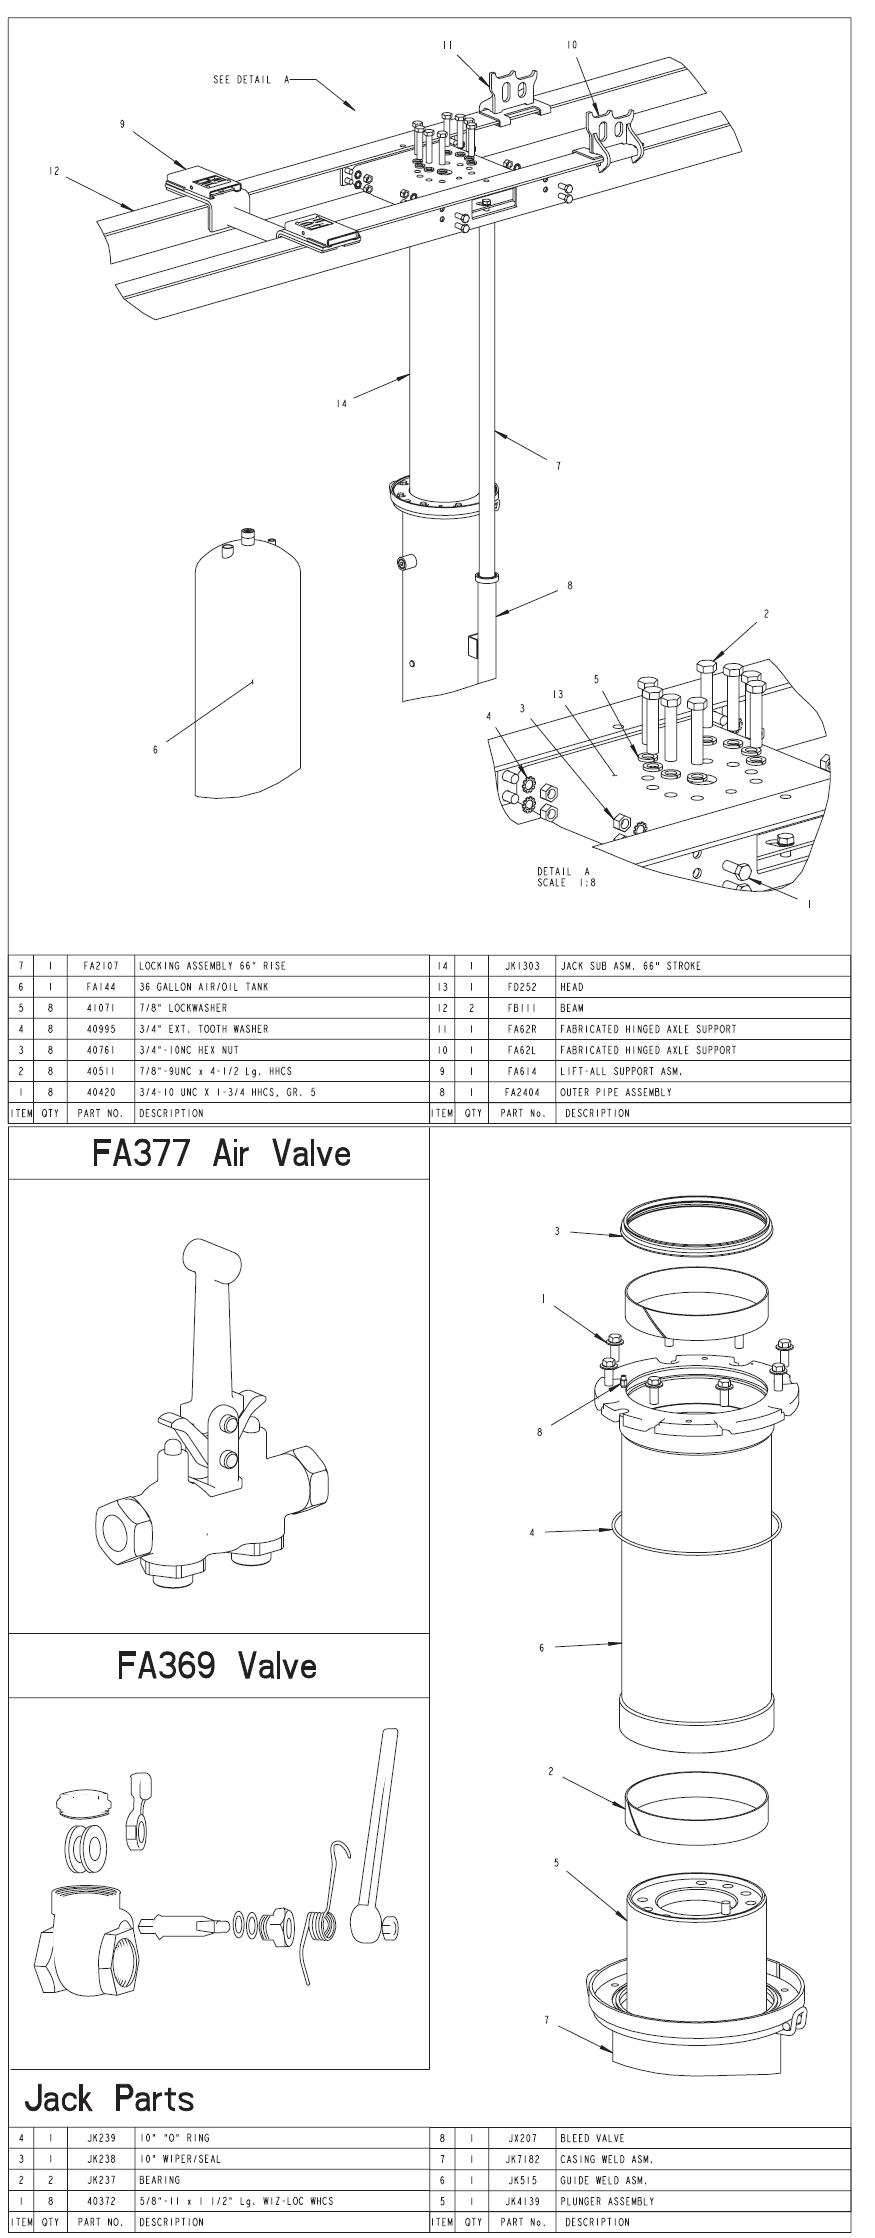 In Ground Lift Parts : Parts diagram for rotary hf